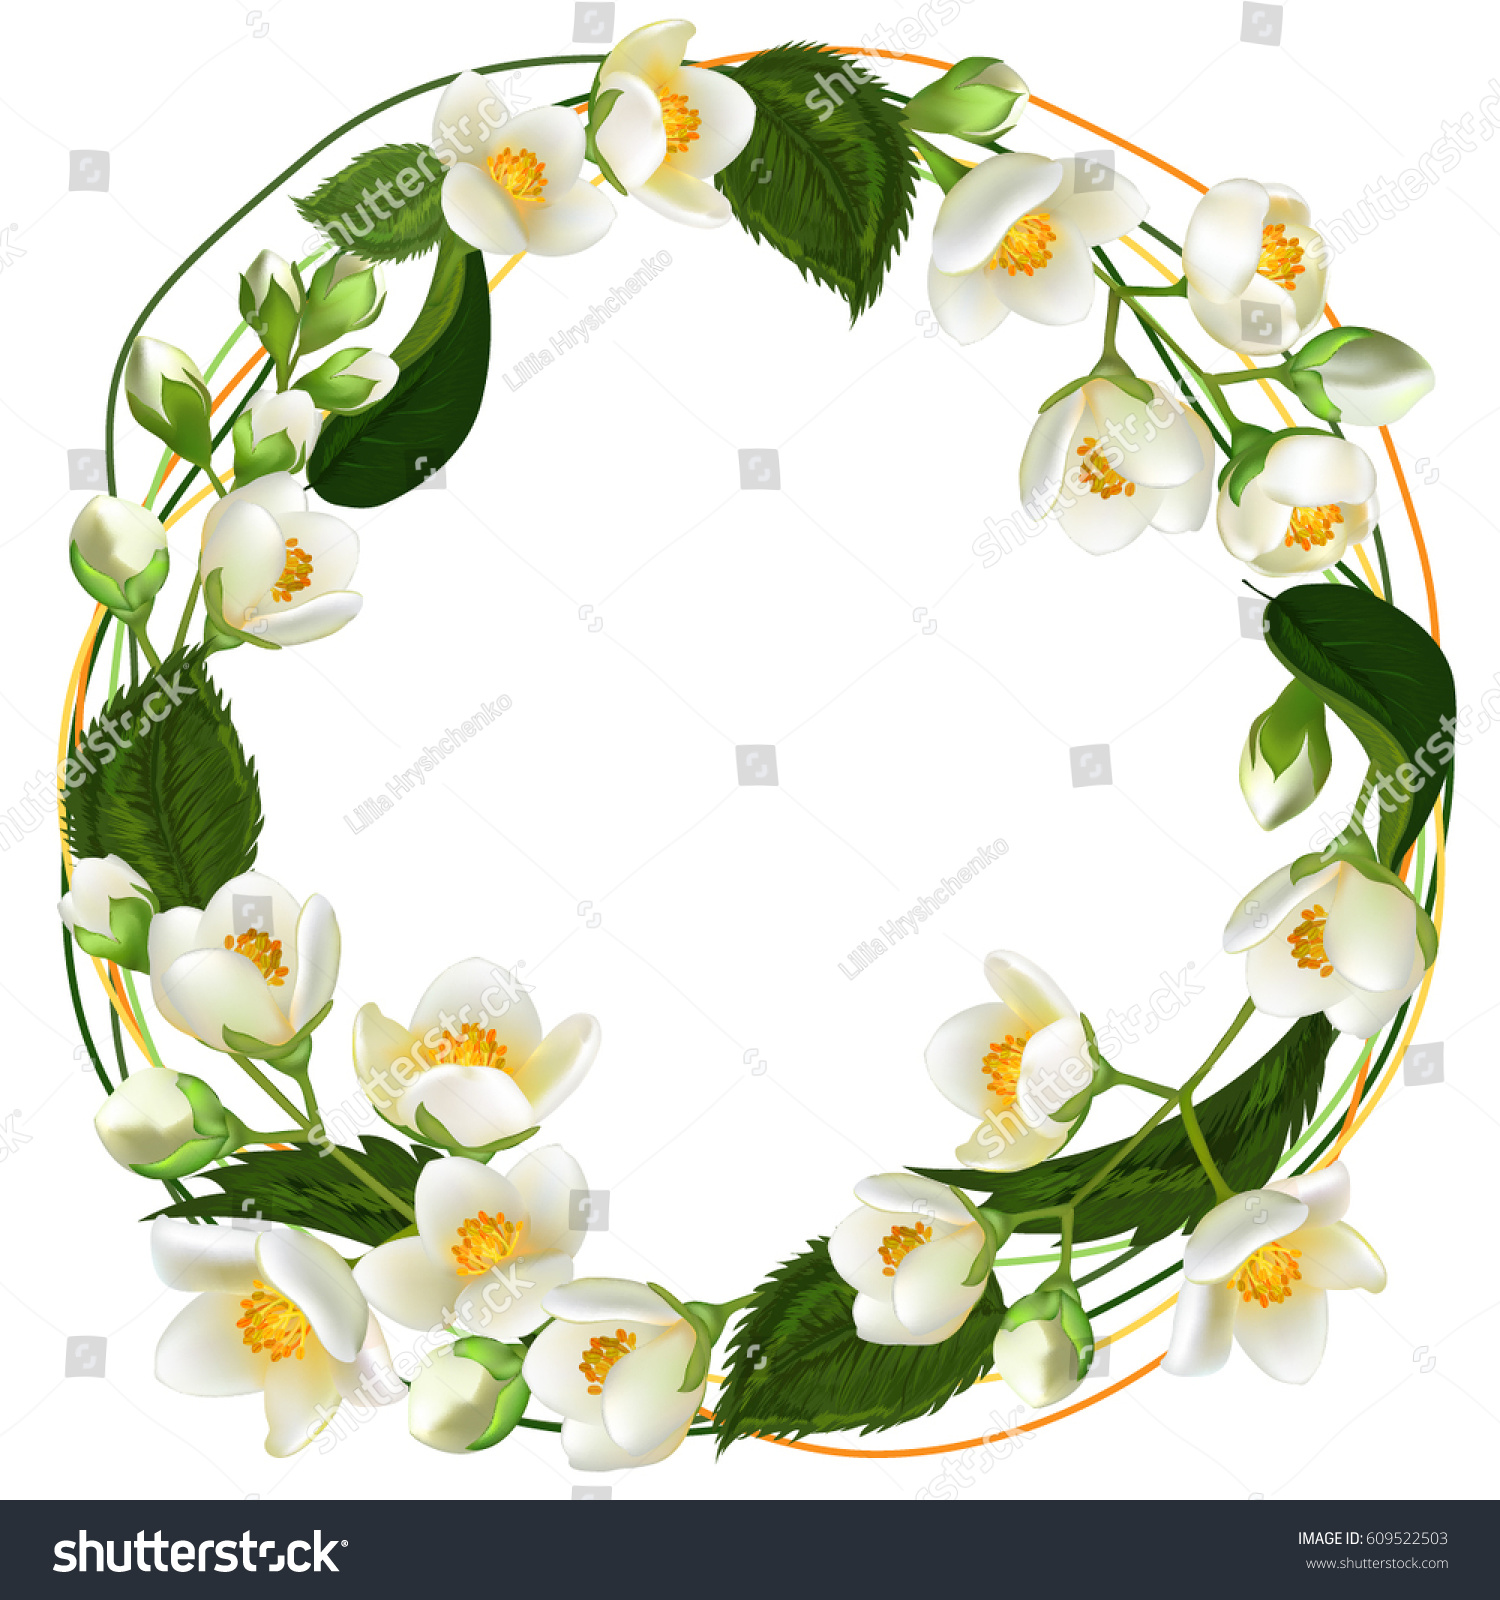 Blooming Flowers Vector Illustration